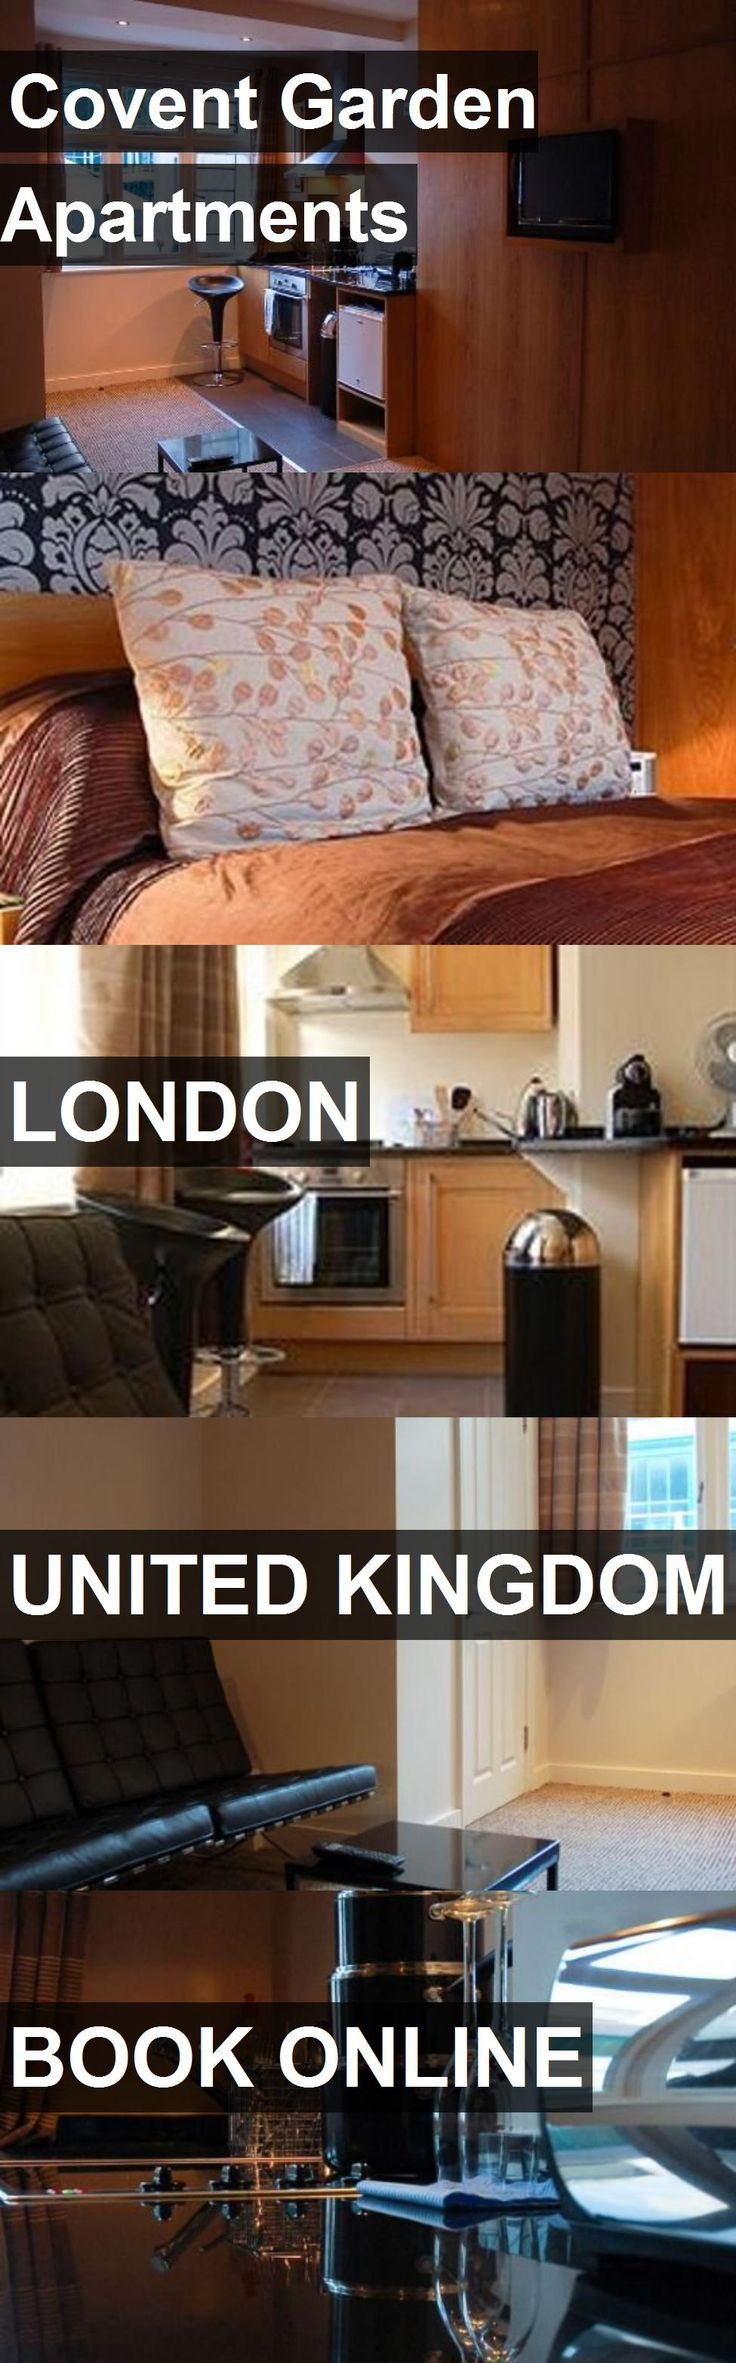 Best 25+ Apartments in london ideas on Pinterest | Warehouses ...